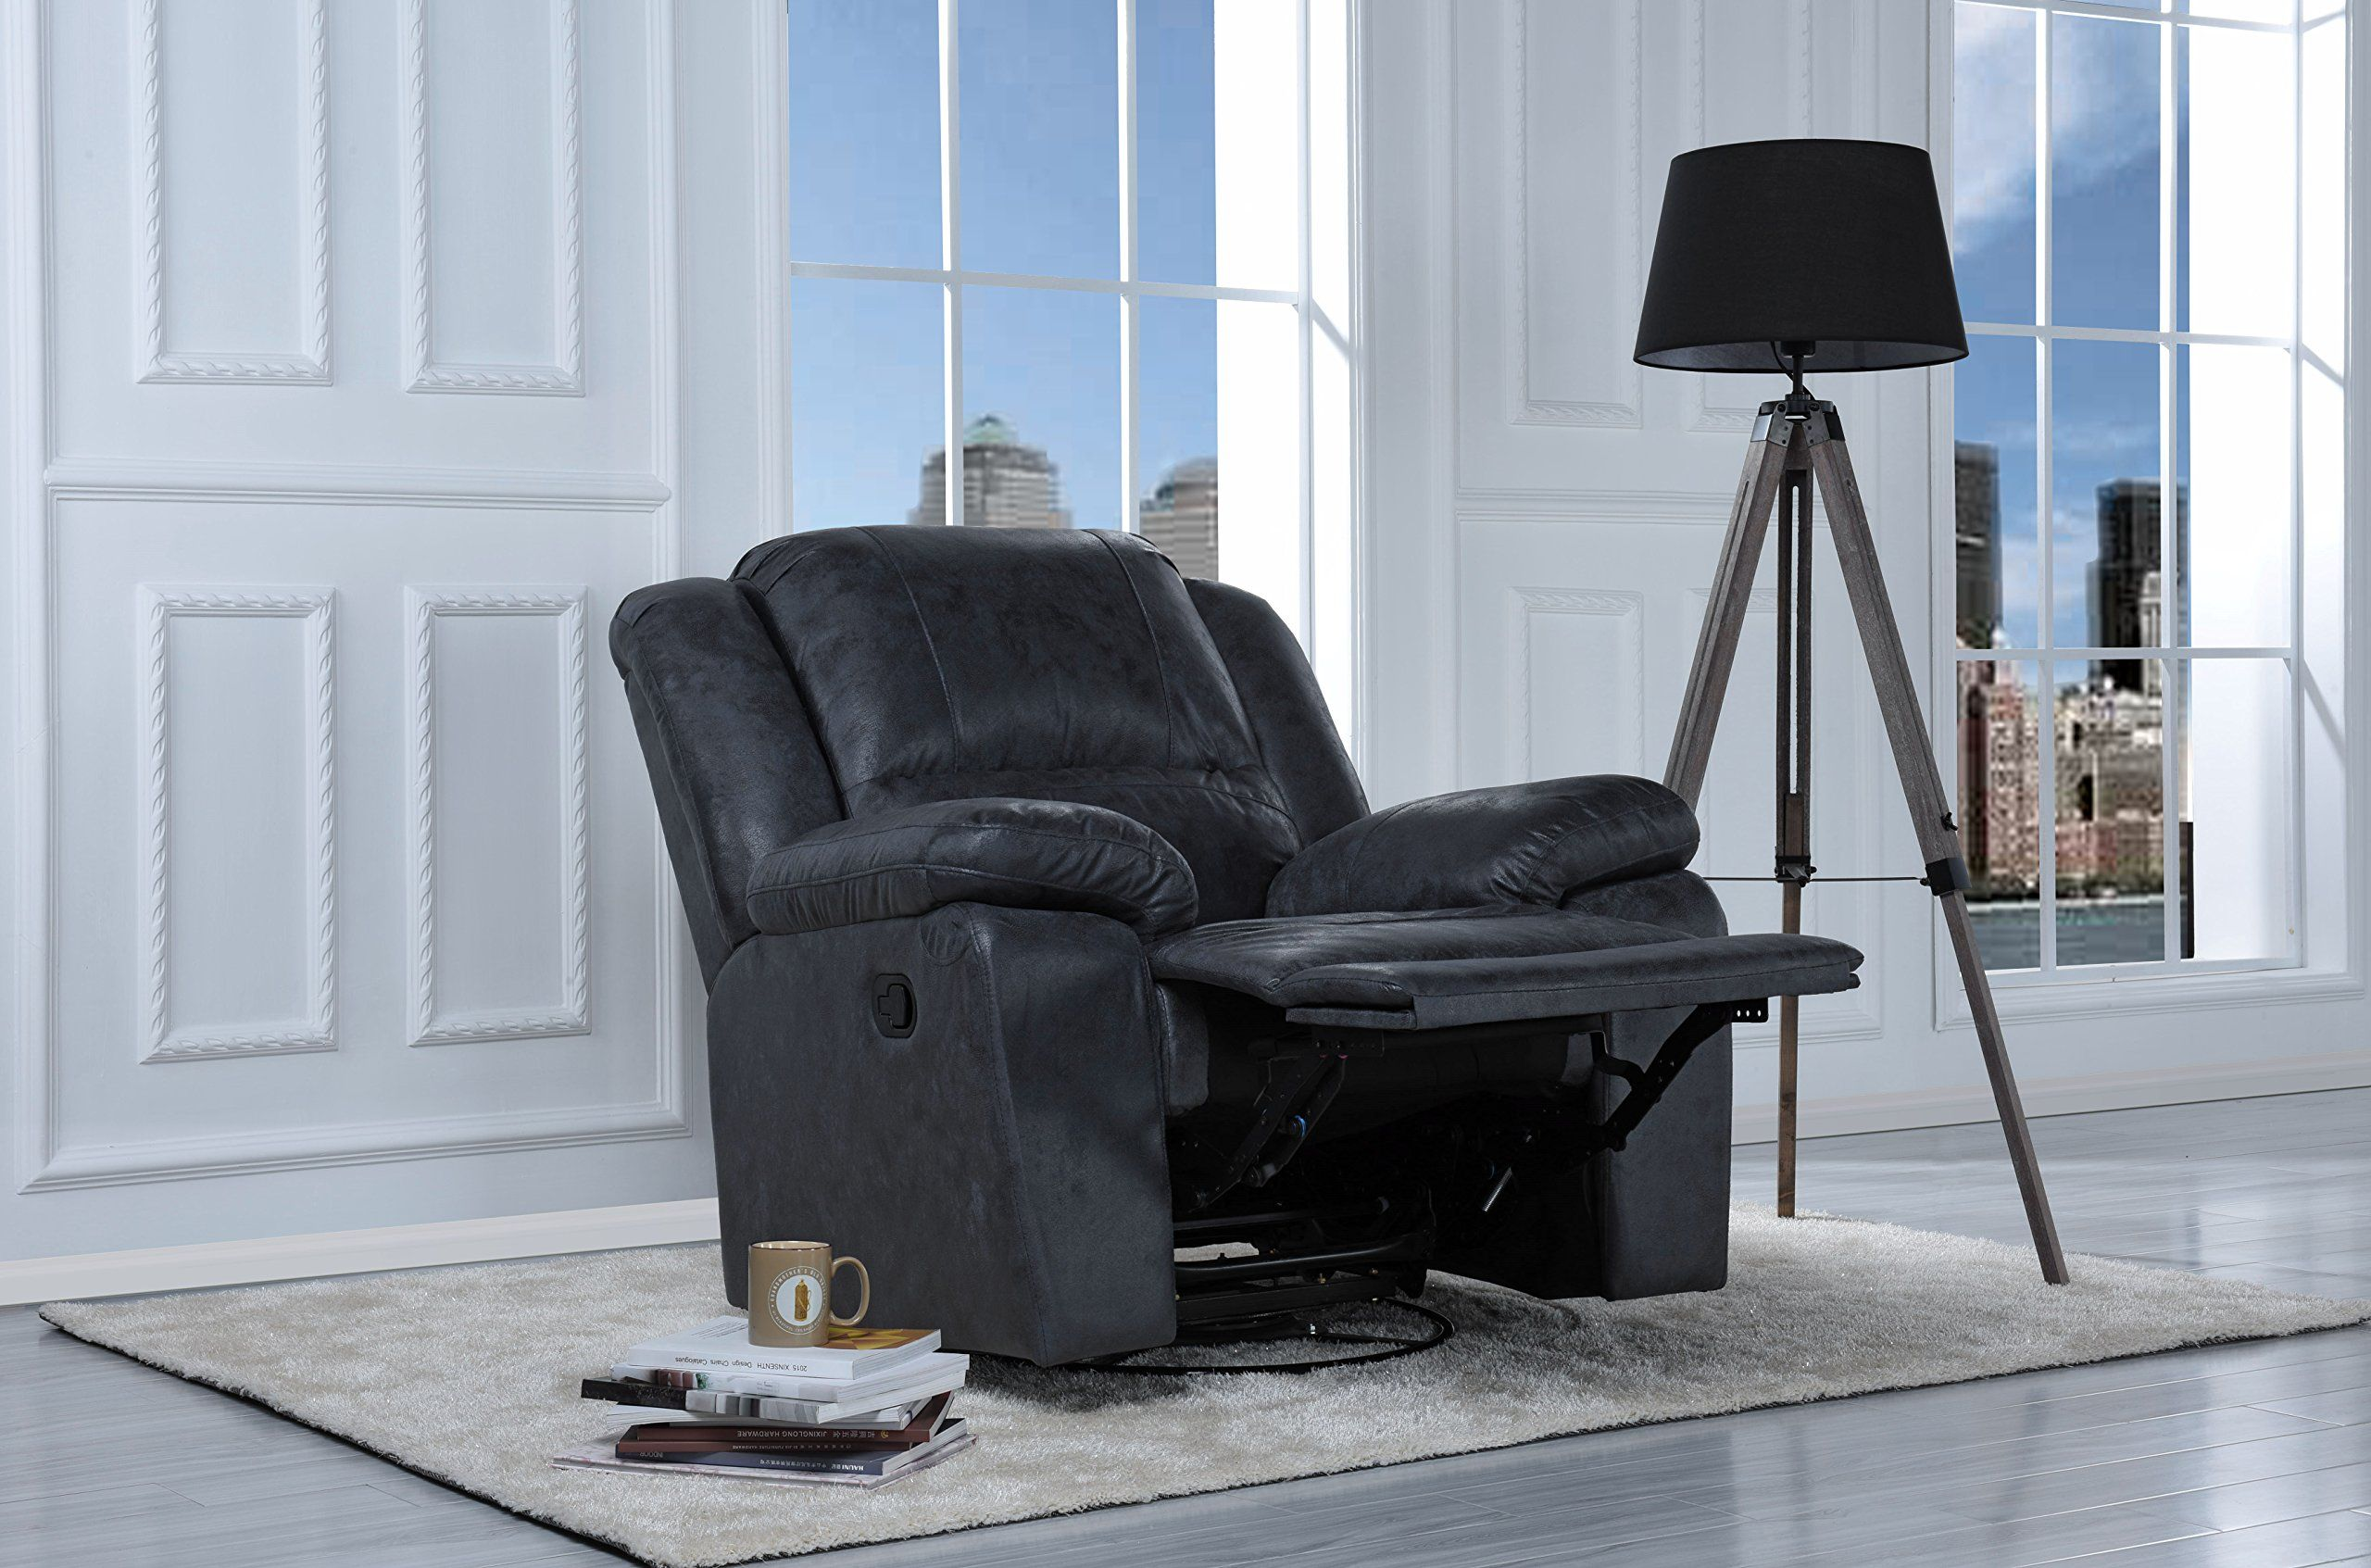 Oversize Ultra Comfortable Air Leather Fabric Rocker